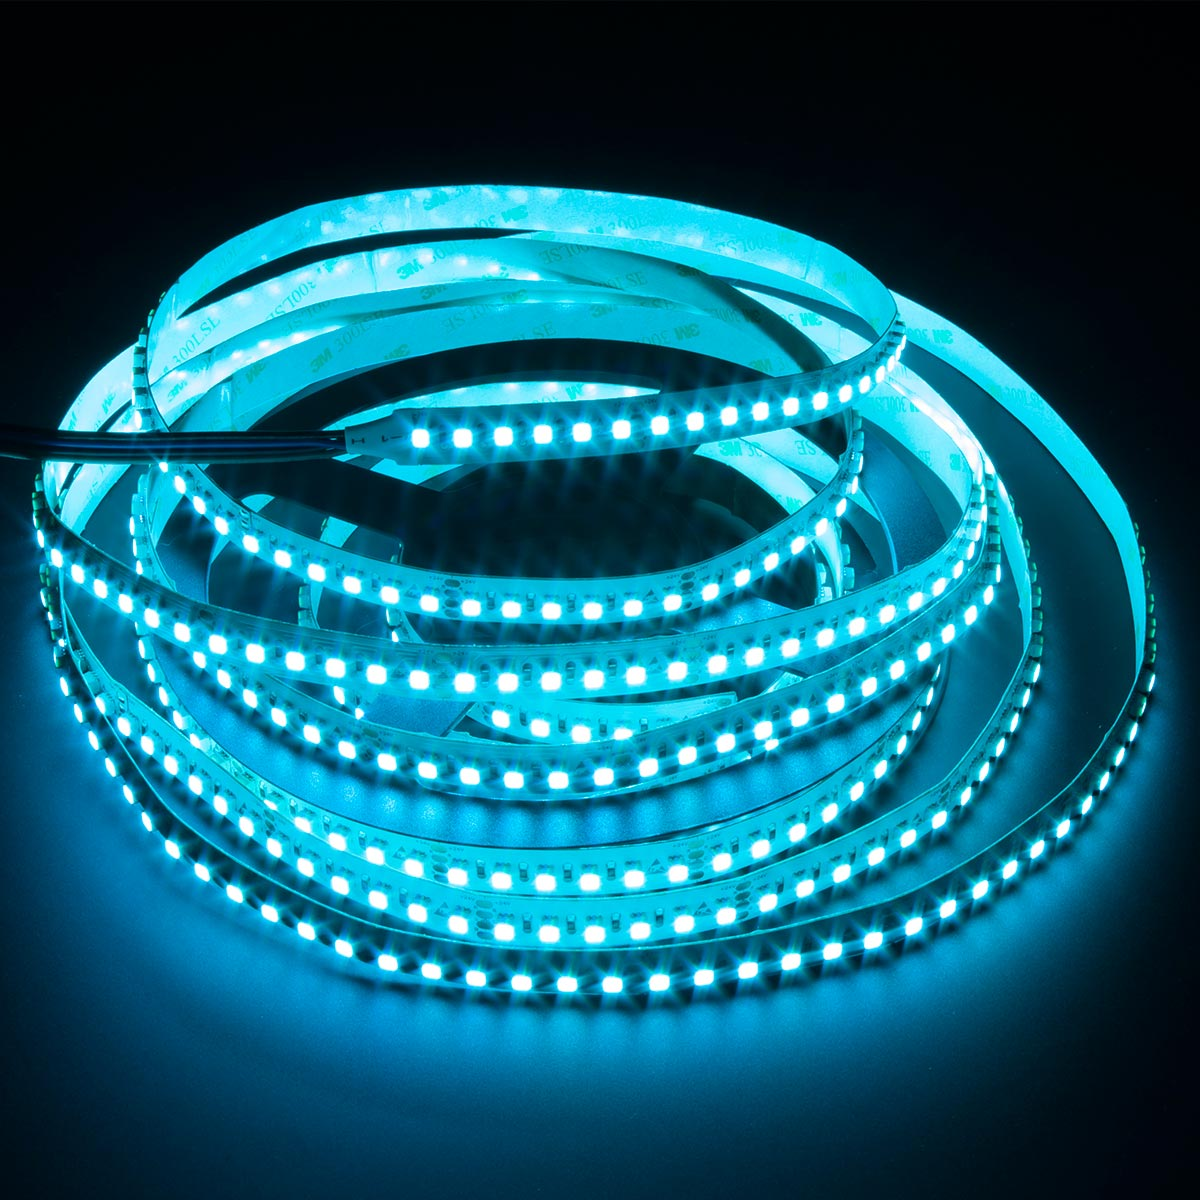 Color changing rgb 3535 150w led strip light ultrabright color changing rgb 3535 150w led strip light aloadofball Images